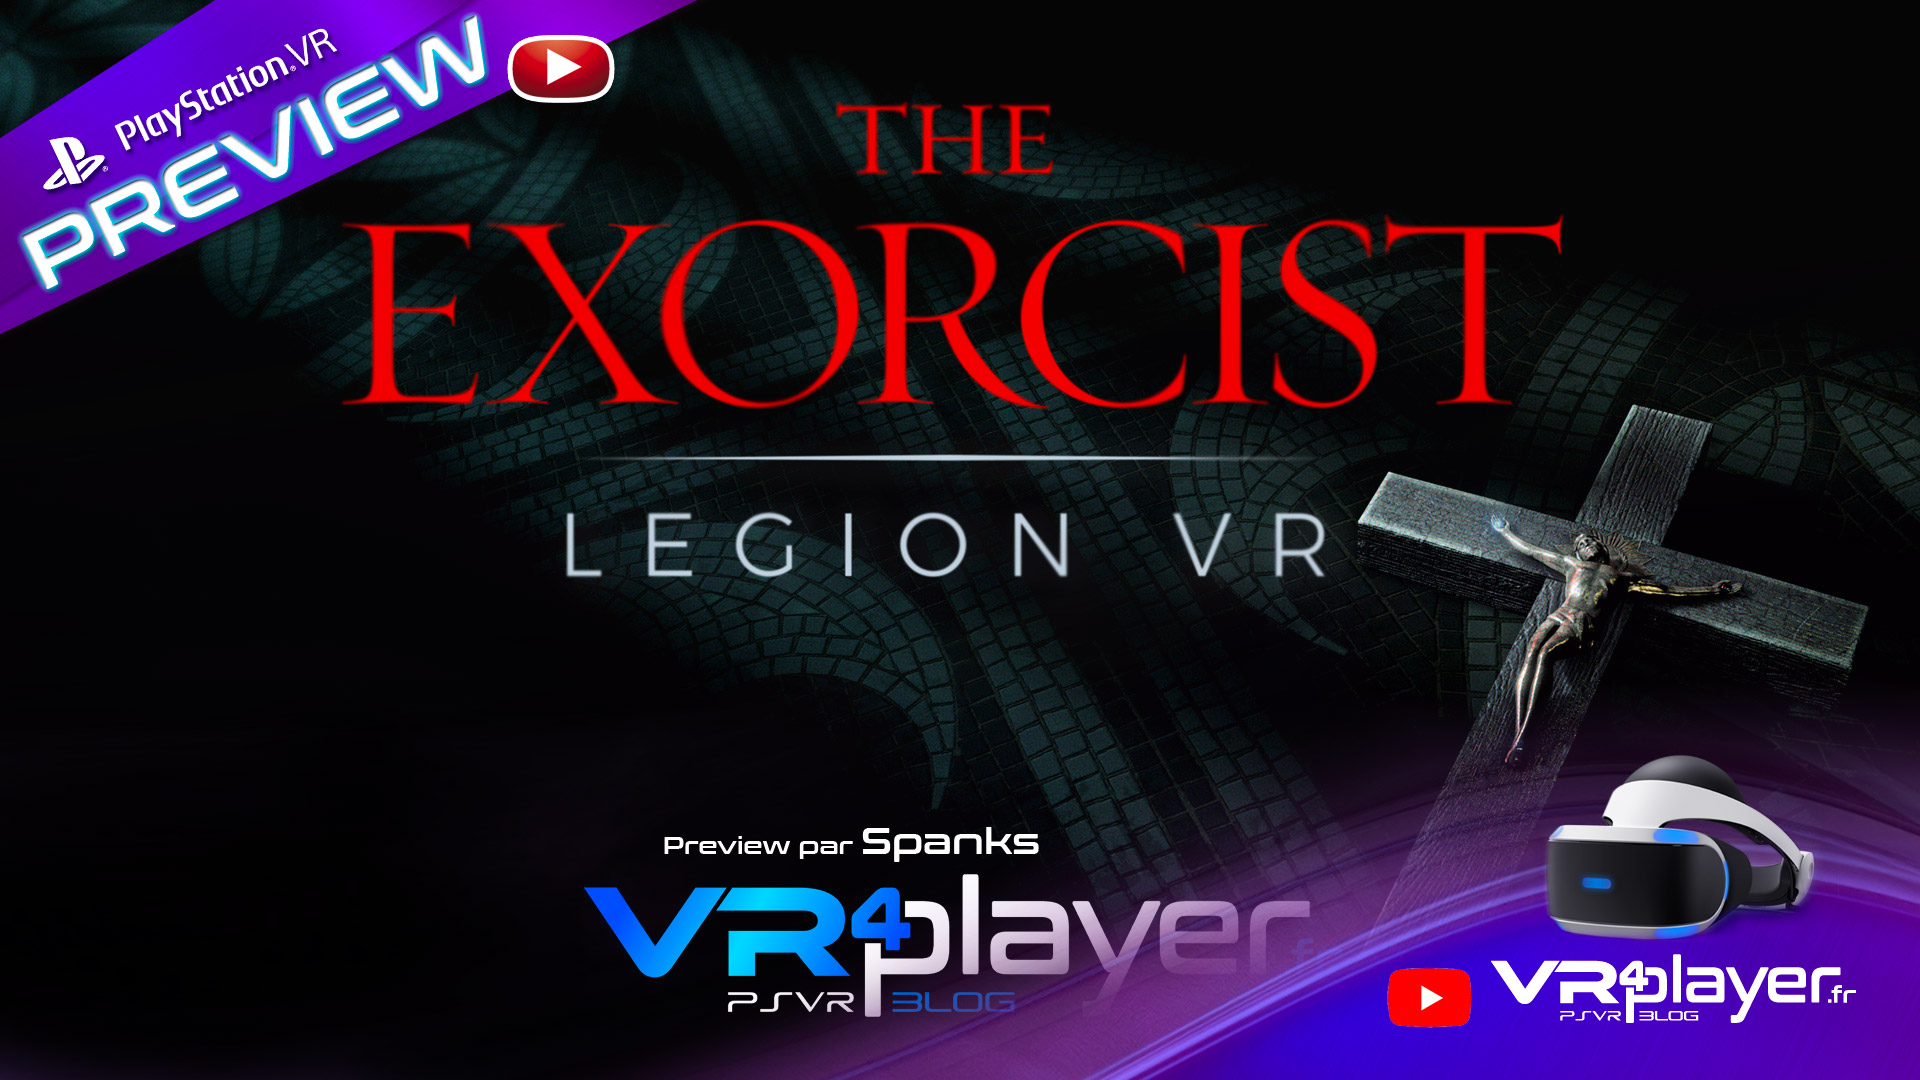 The Exorcist Legion VR sur PC